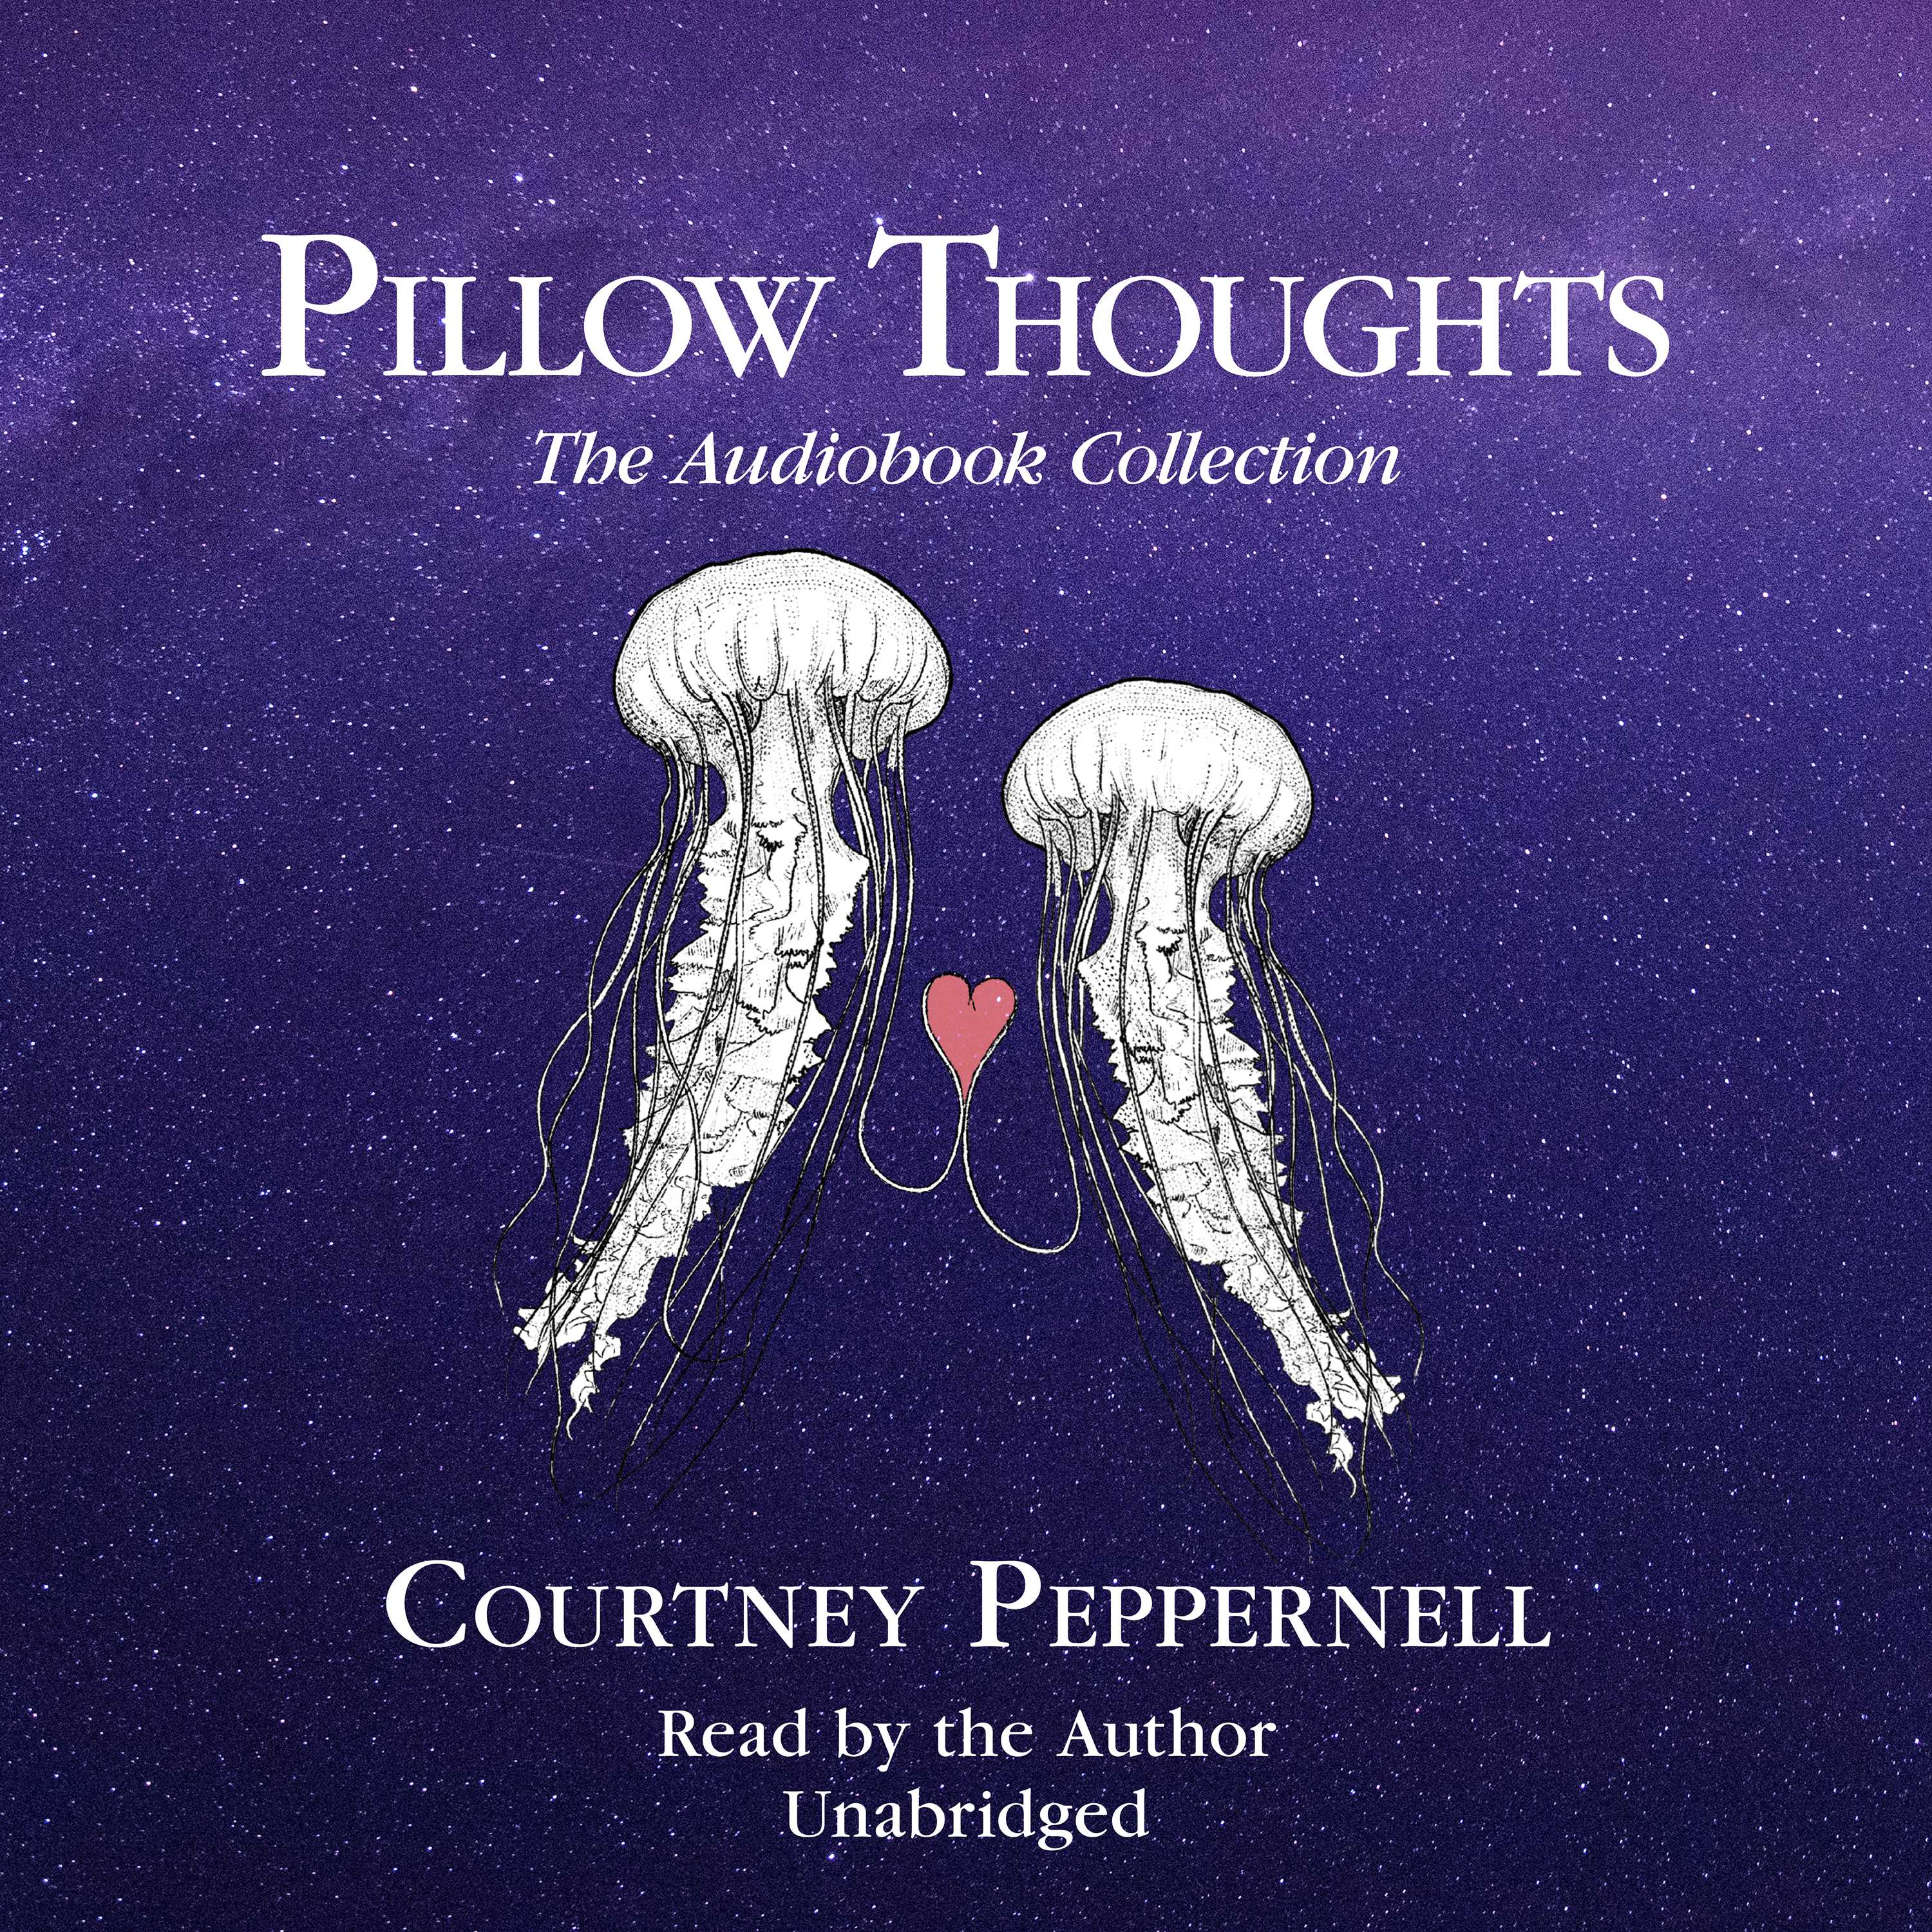 Pillow Thoughts: The Audiobook Collection (Pillow Thoughts #1 - #3)